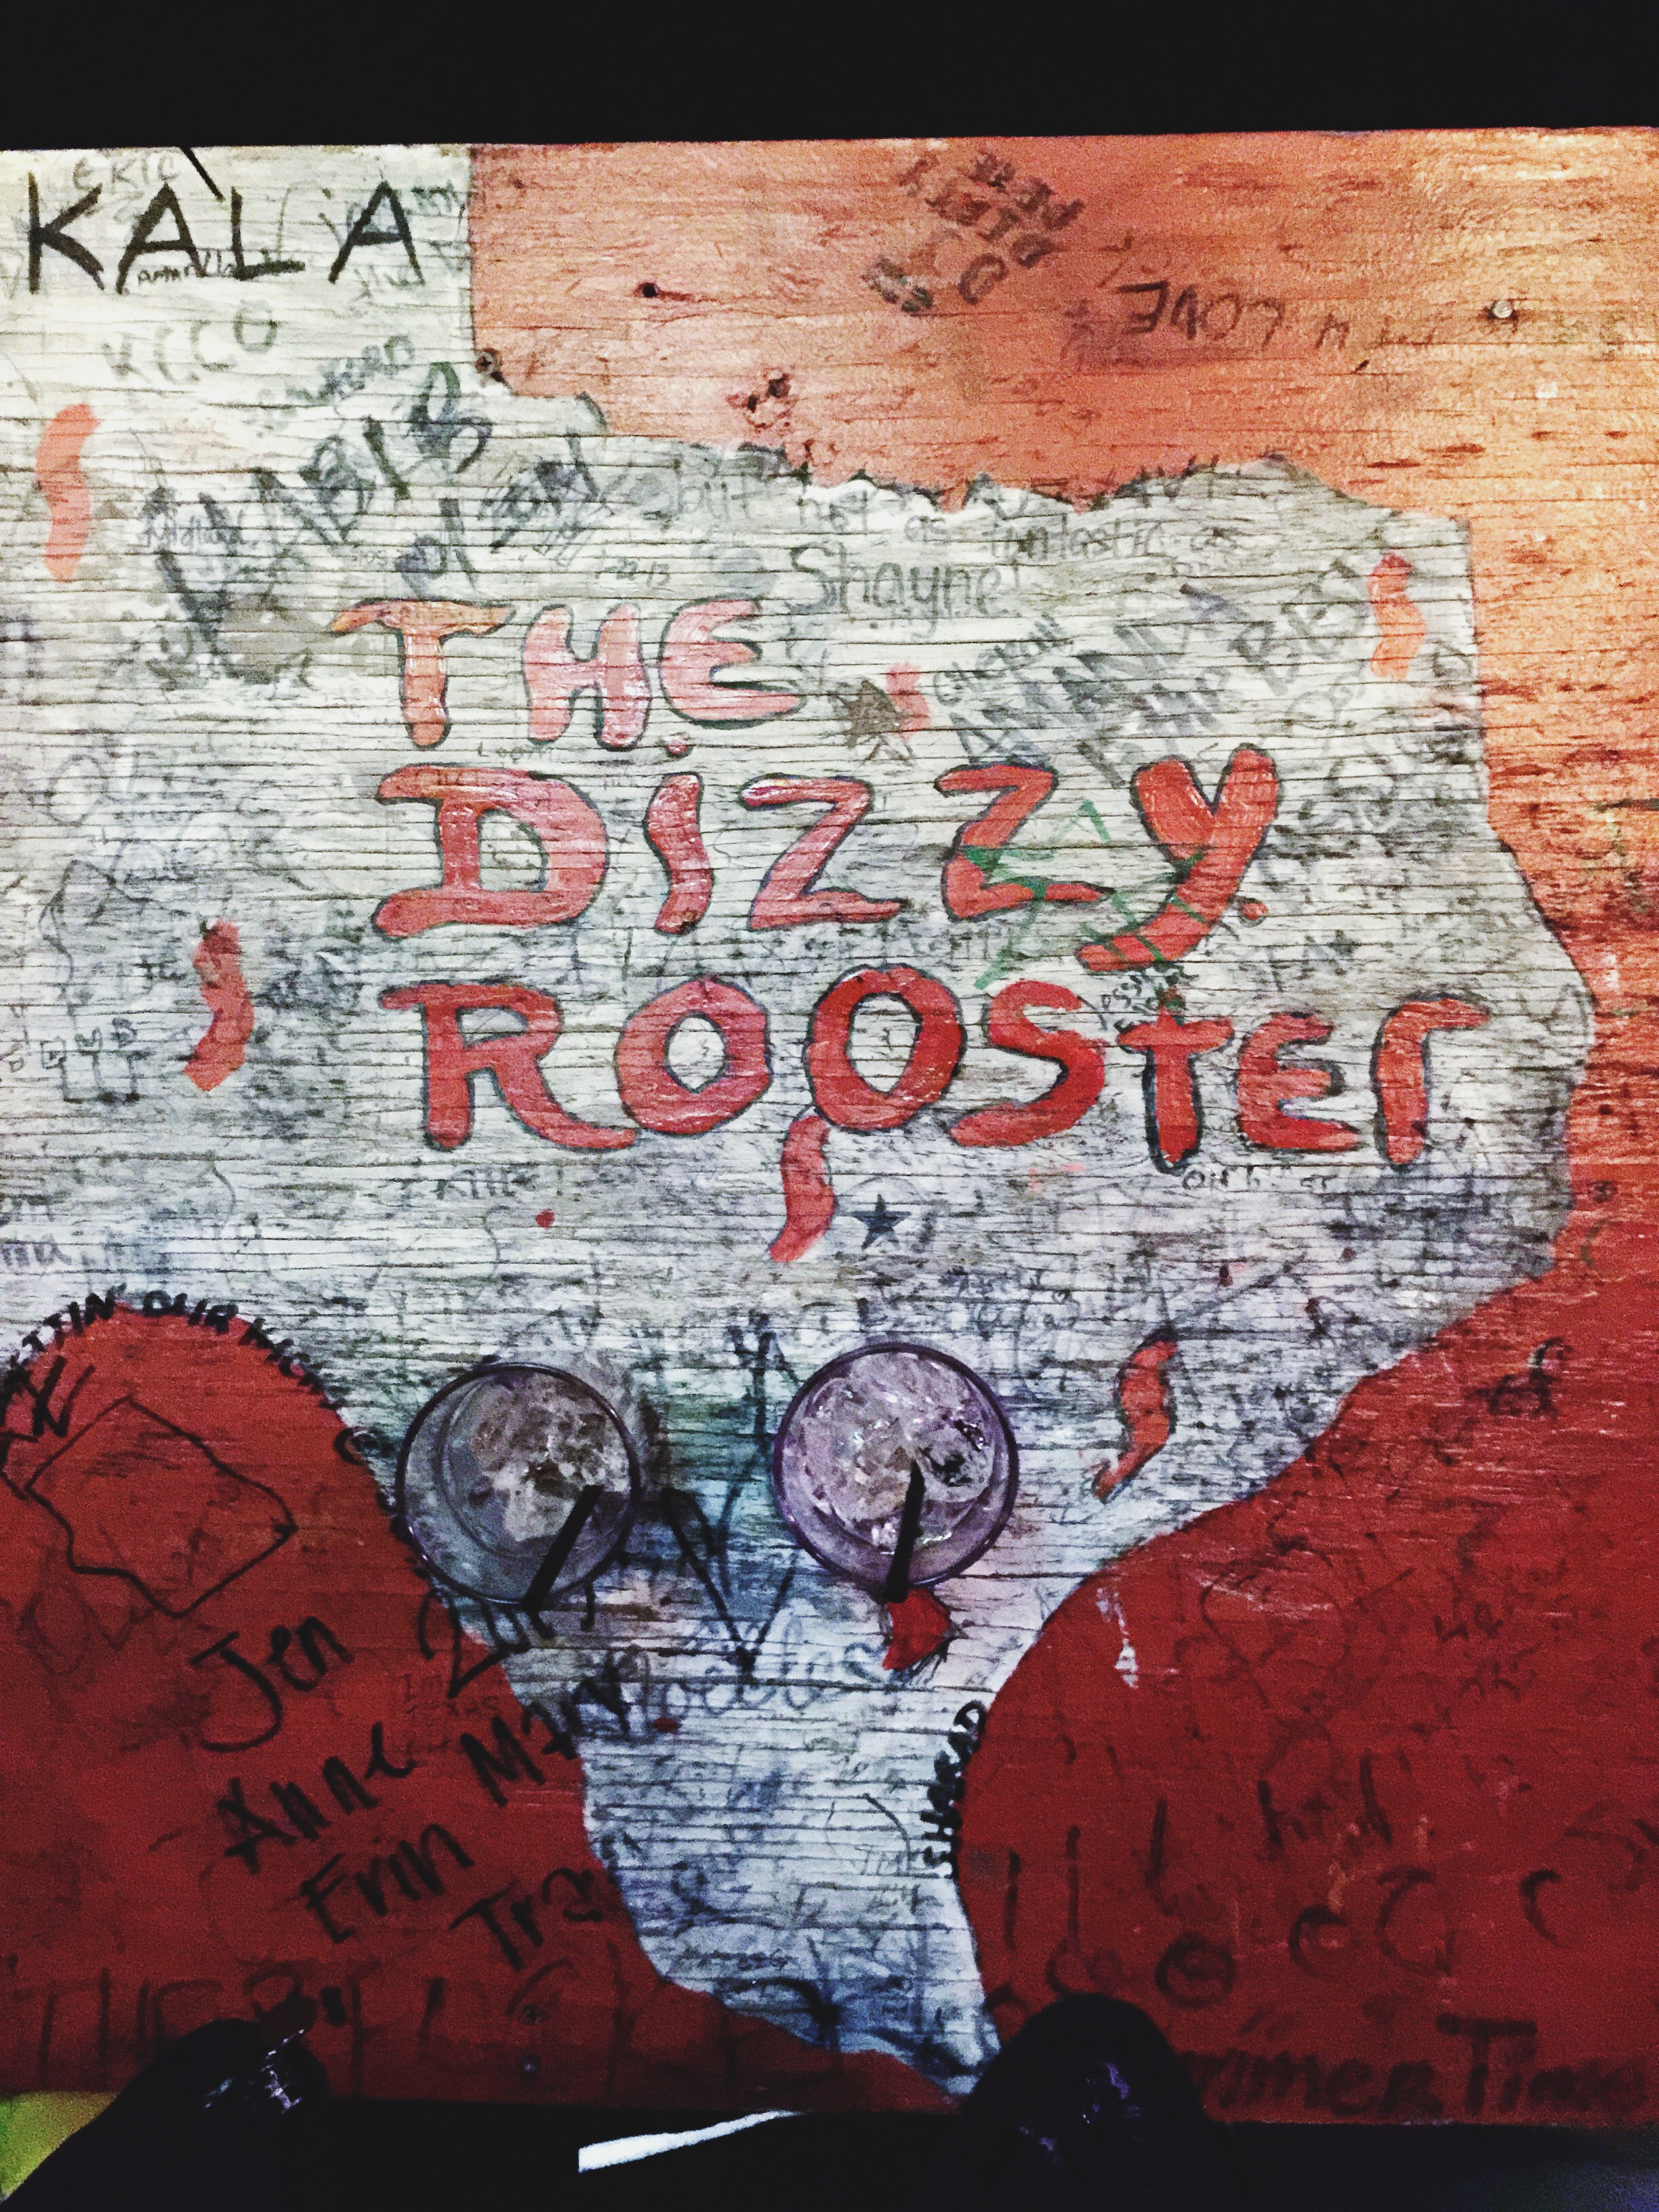 {the dizzy rooster, one of our many stops on sixth street.}